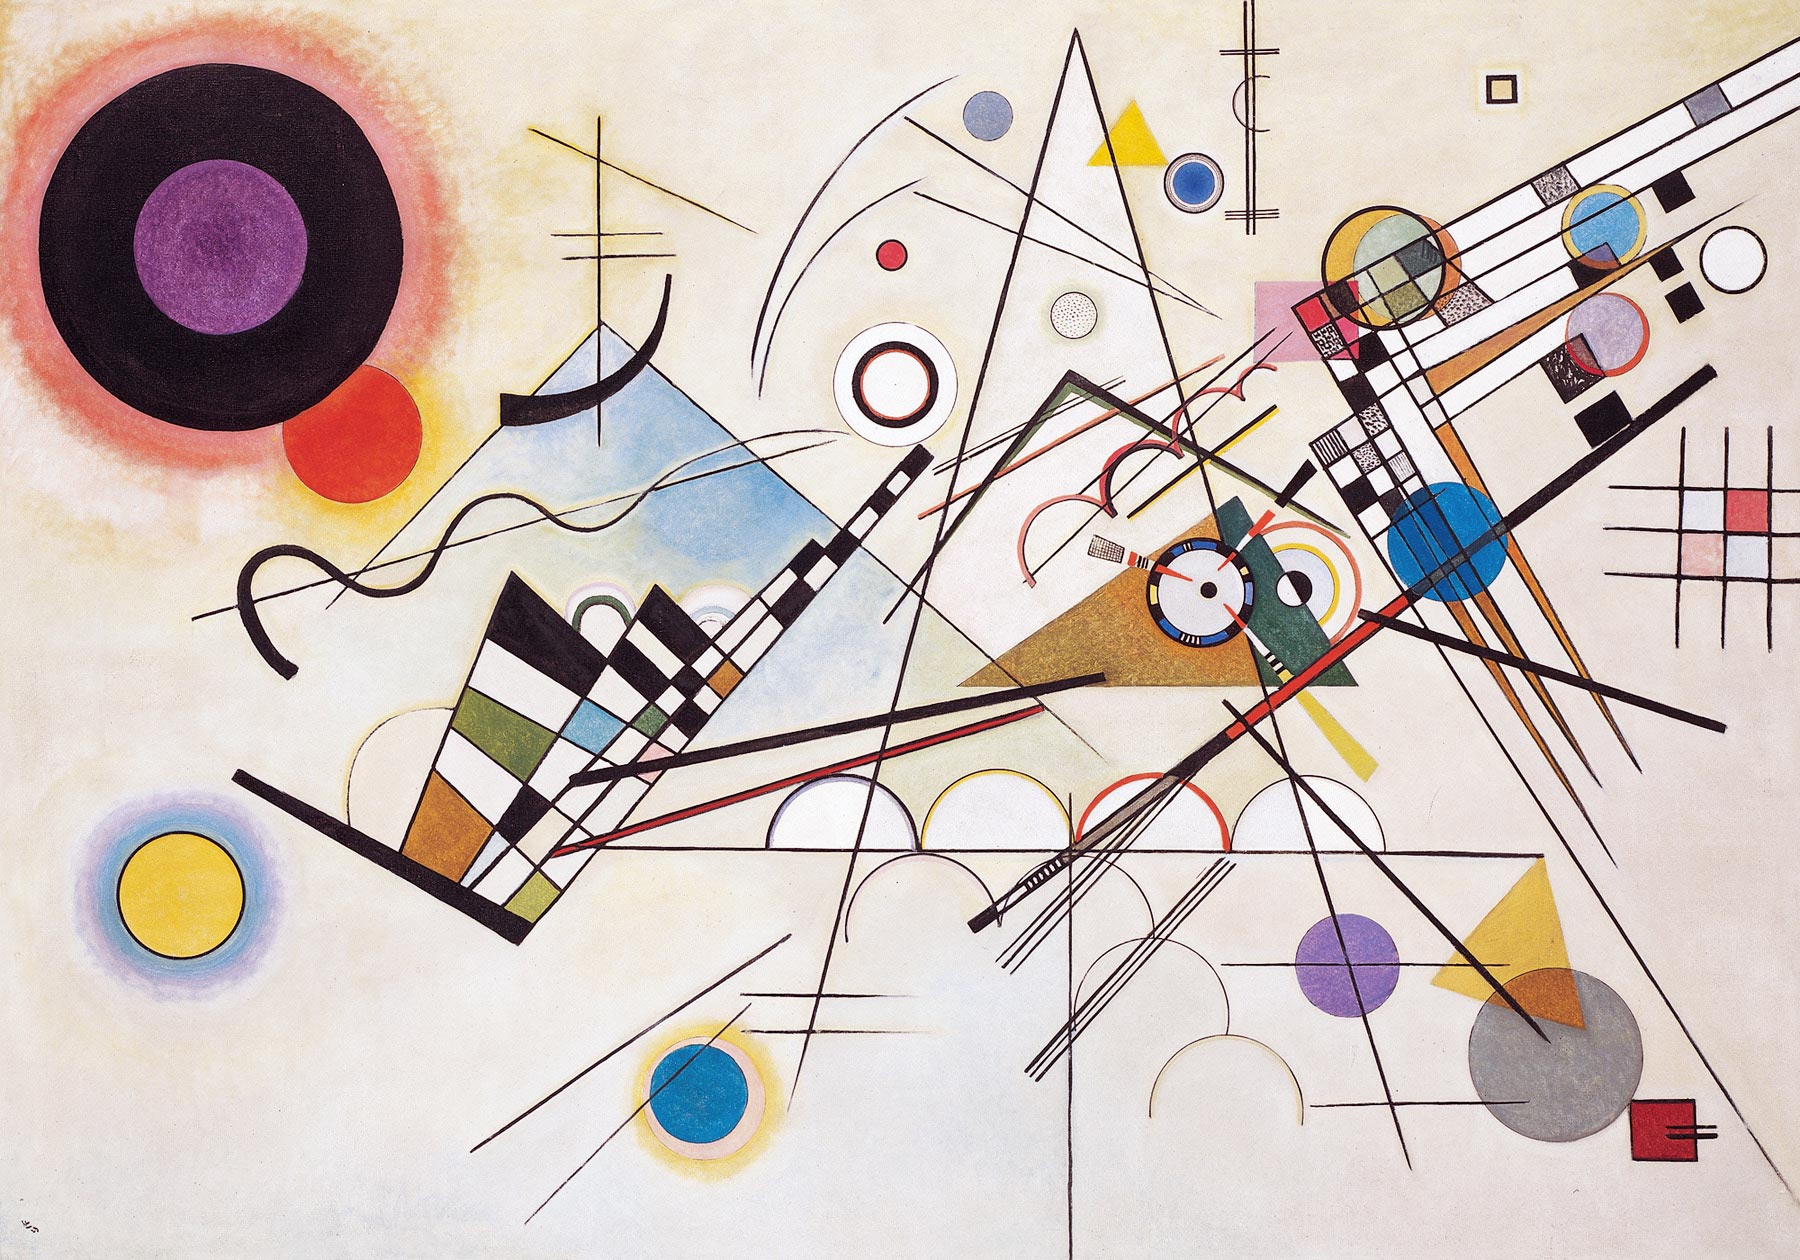 Wassily Kandinsky. Composition VIII. 1923 year